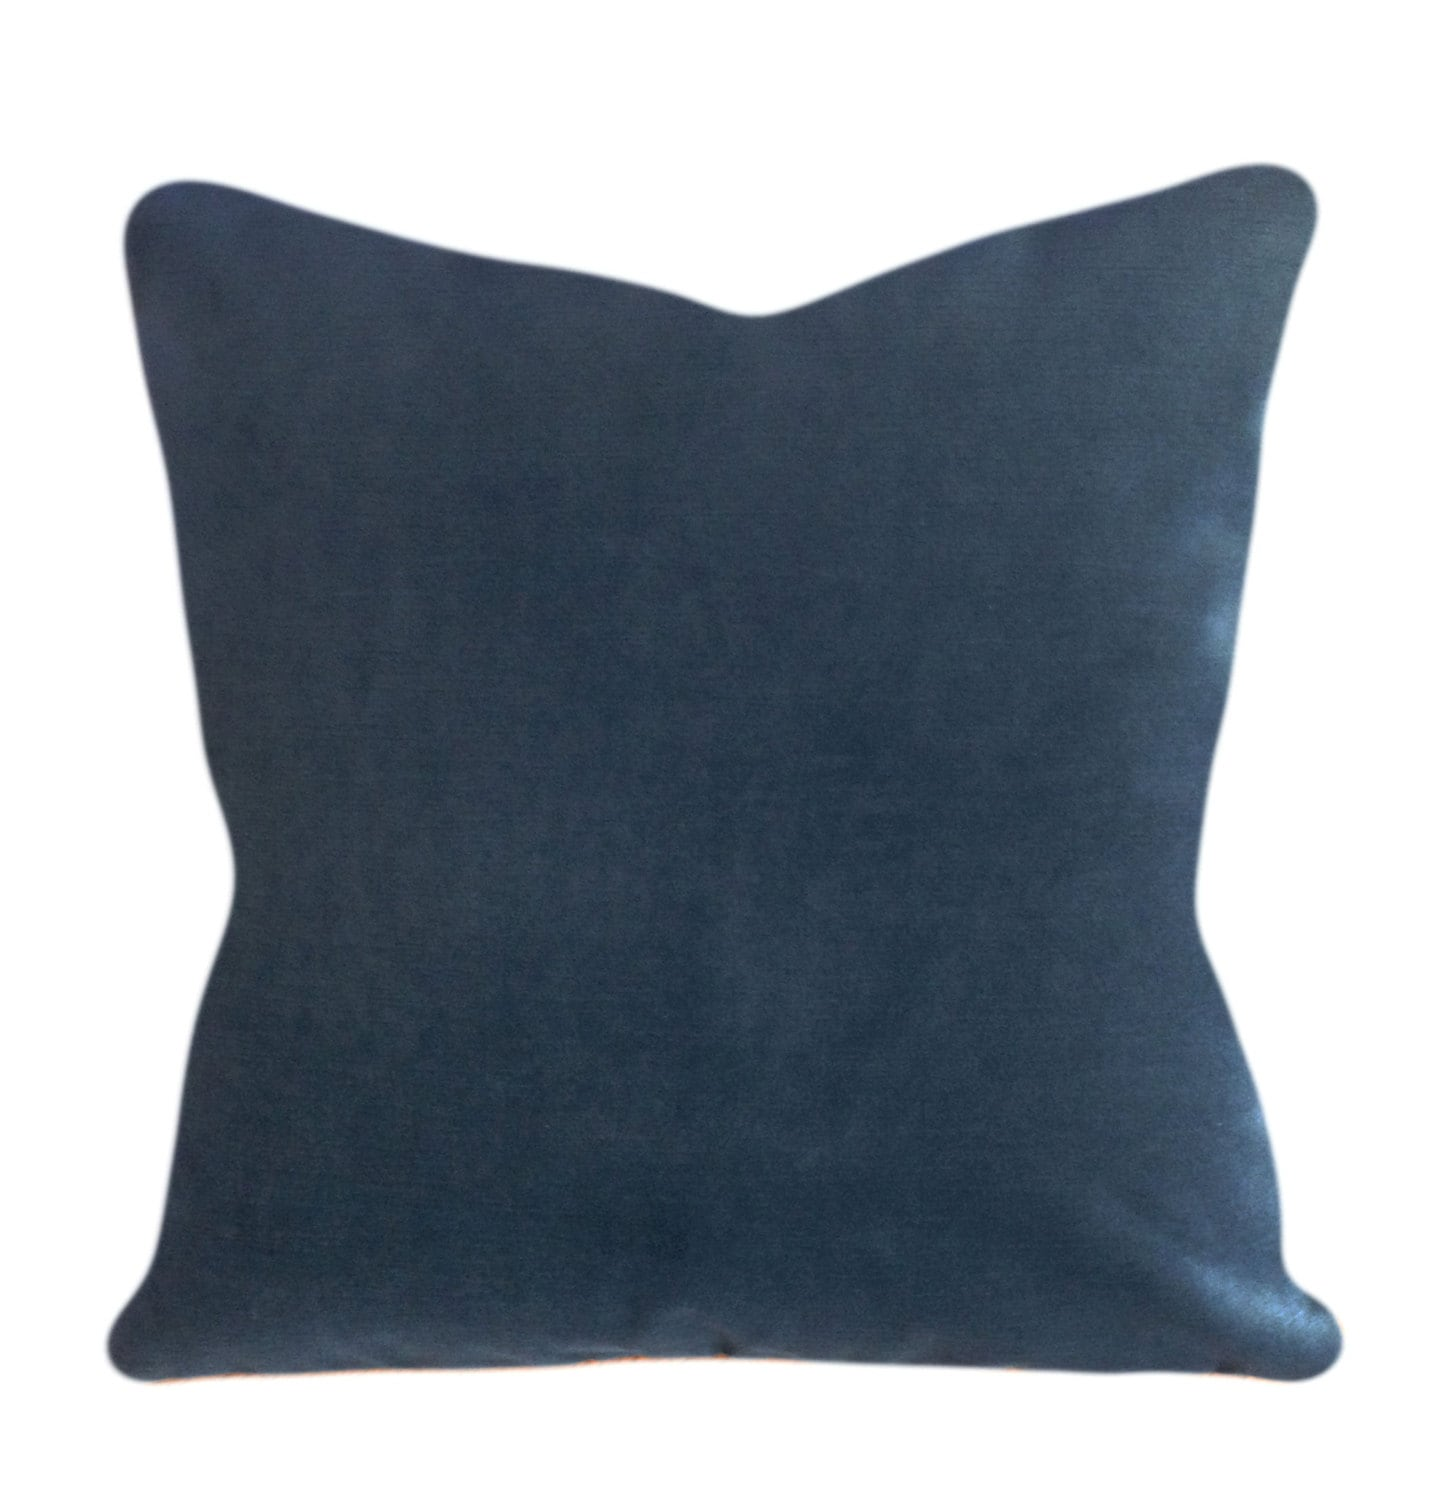 Blue Velvet Peacock Decorative Pillow Cover by PillowTimeGirls